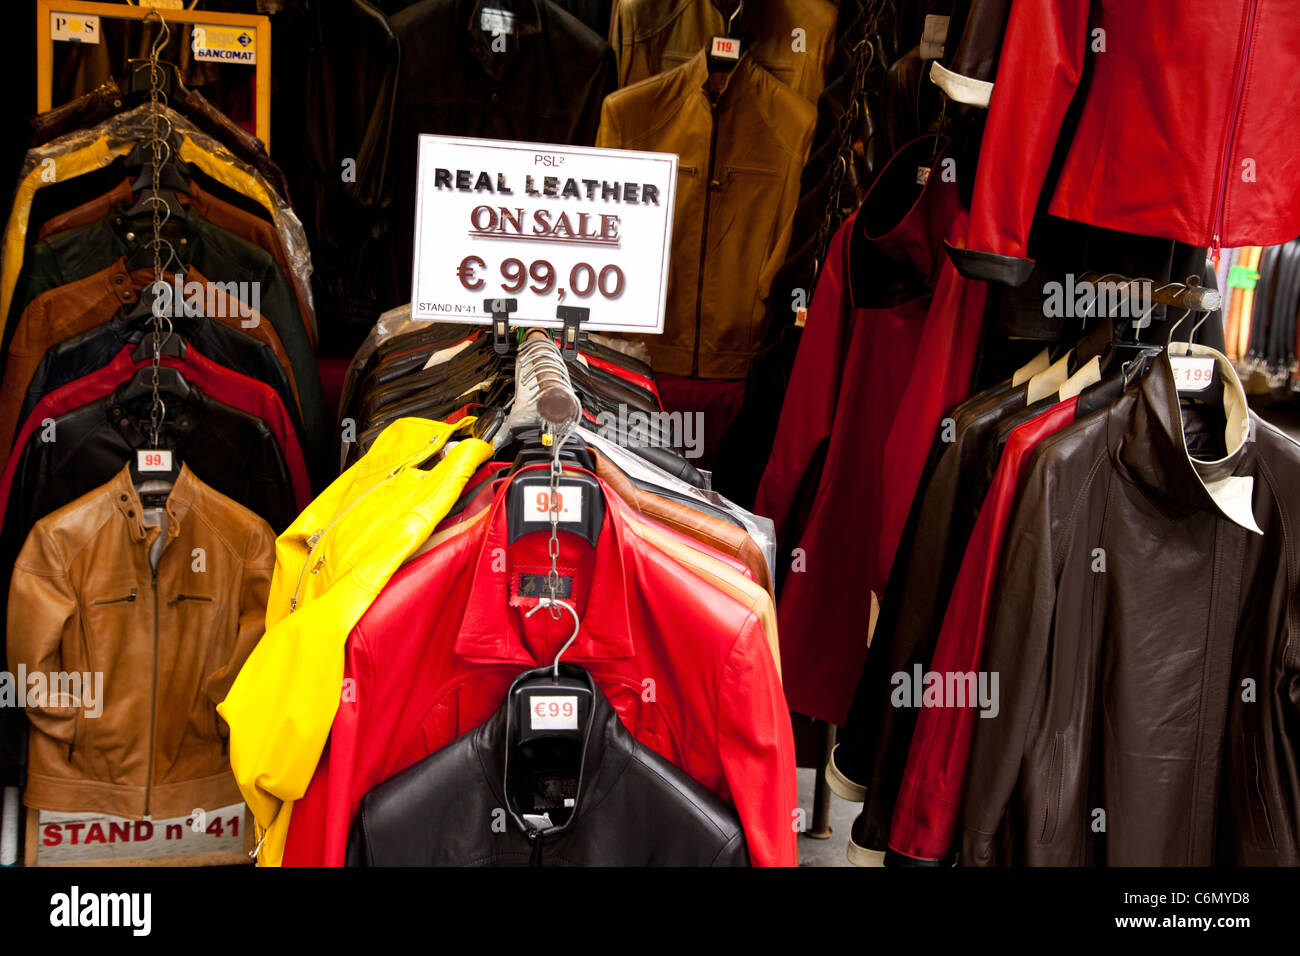 Leather Jackets Displayed At The Leather Market In Florence Italy